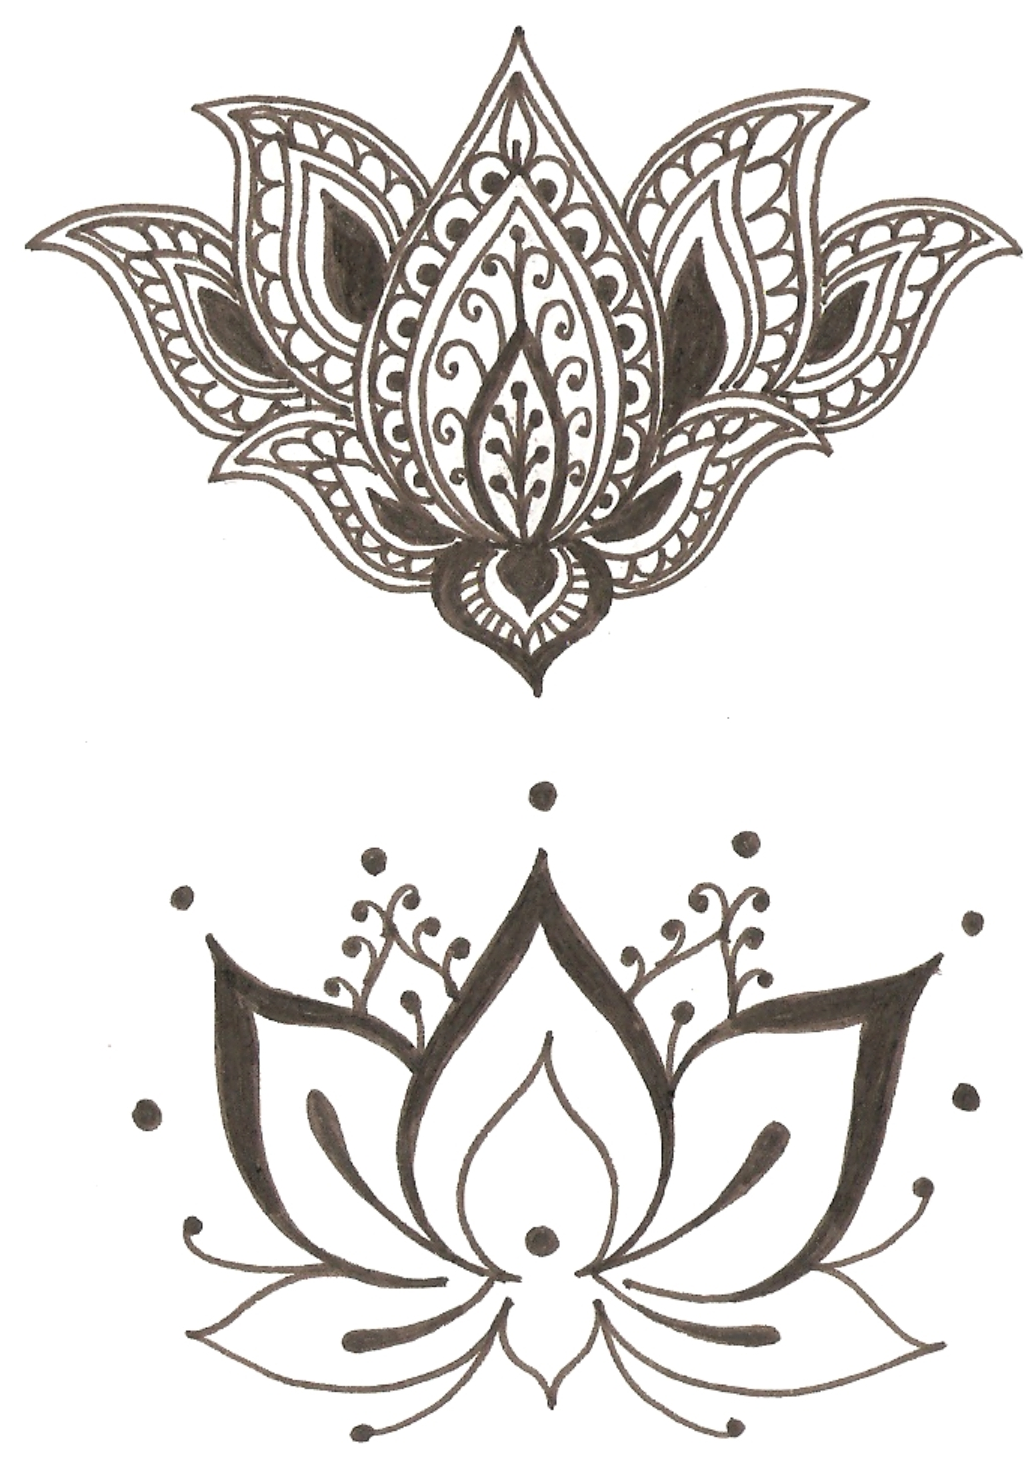 Lotus flower symbol of spirituality beauty femininity purity lotus flower symbol of spirituality beauty femininity purity mightylinksfo